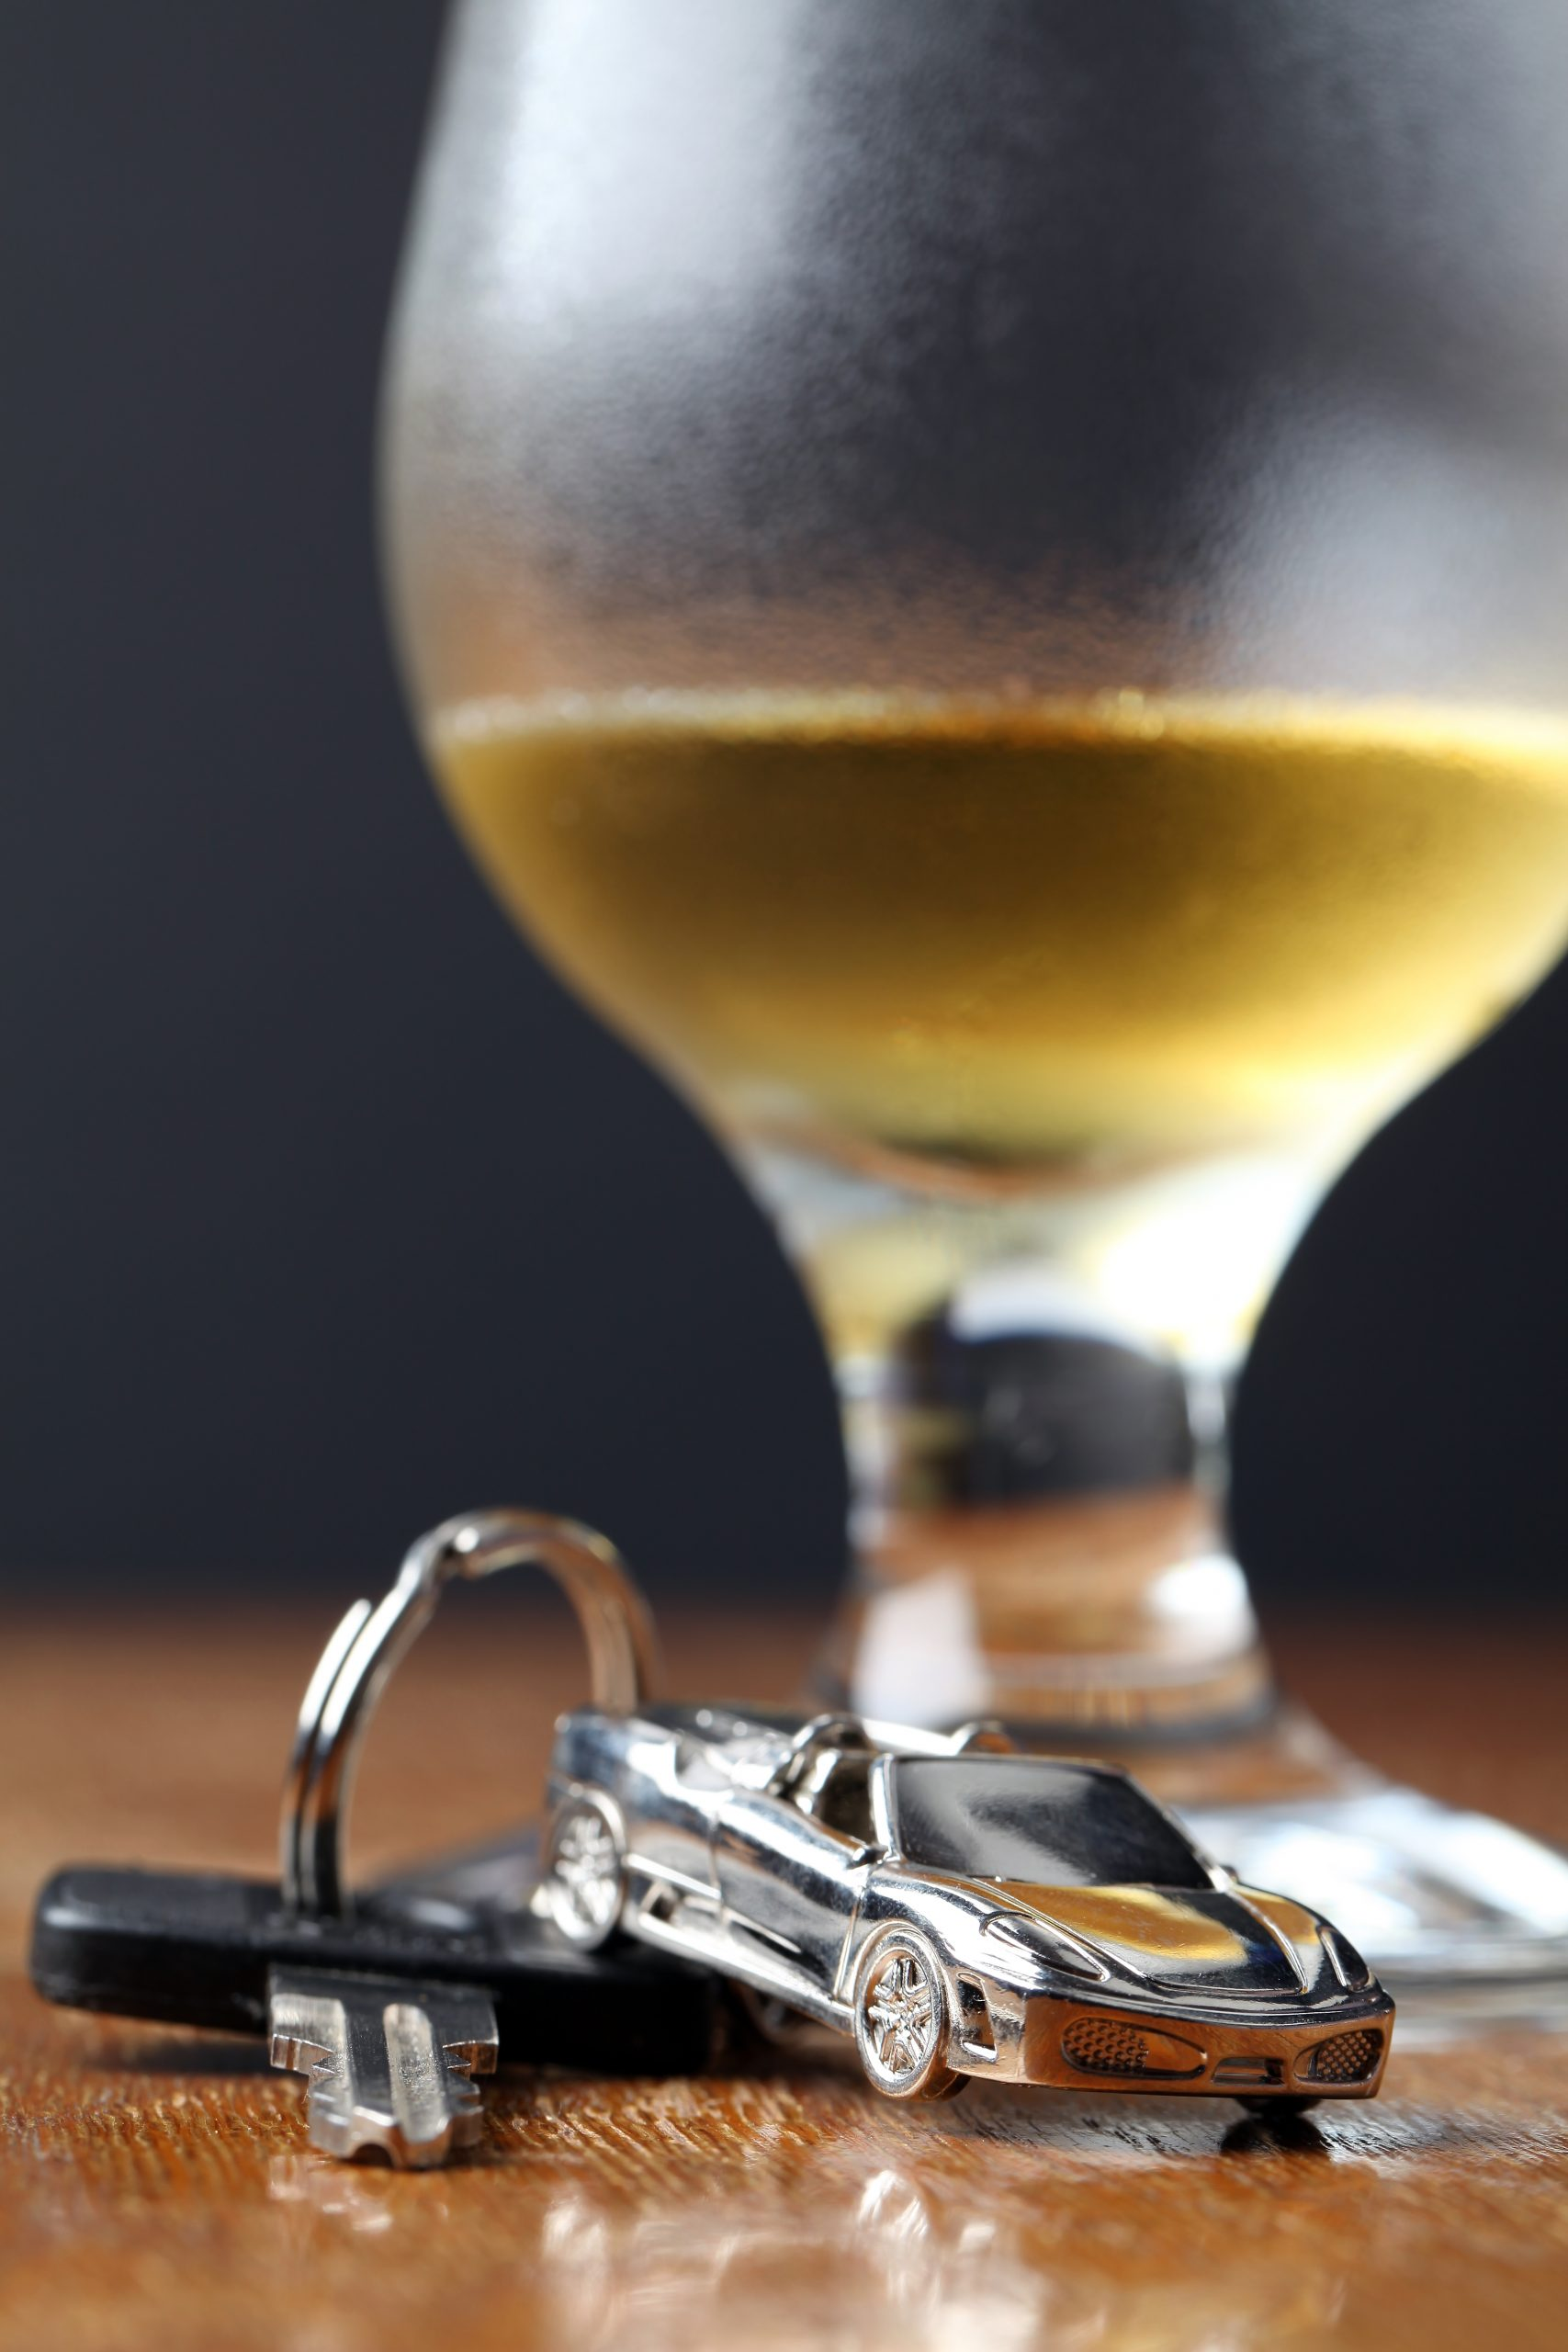 key chain with a miniature car and a glass of beer in the background